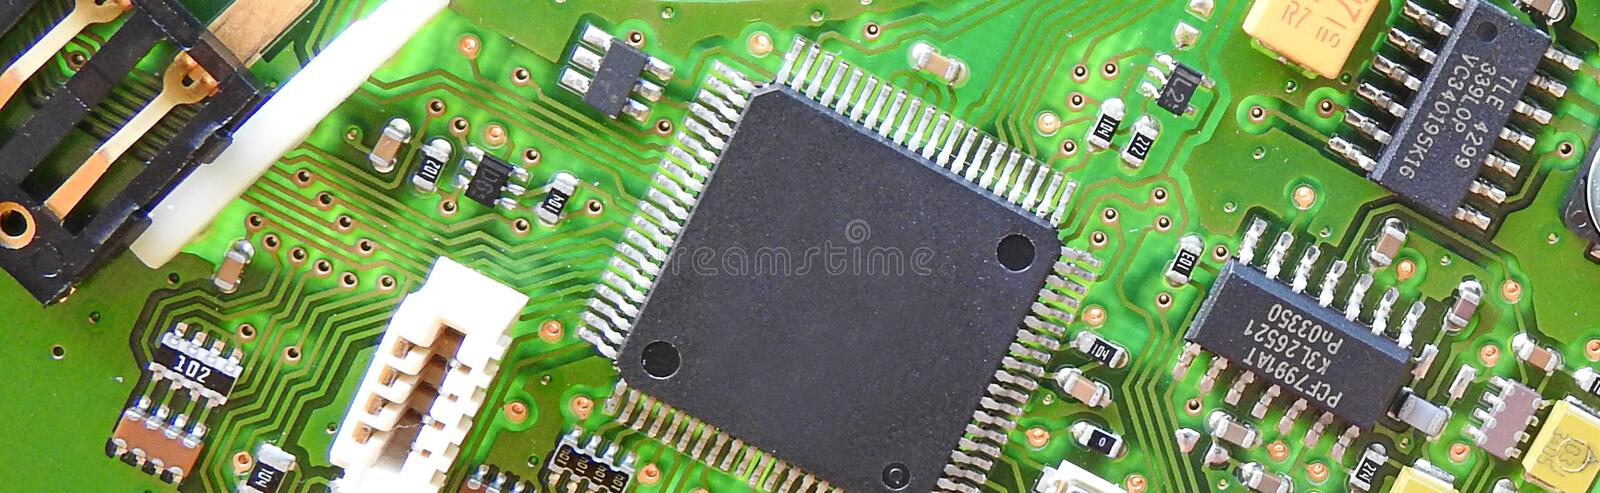 Pcb printed circuit board comms unit control panel switches points microchip electronic royalty free stock images